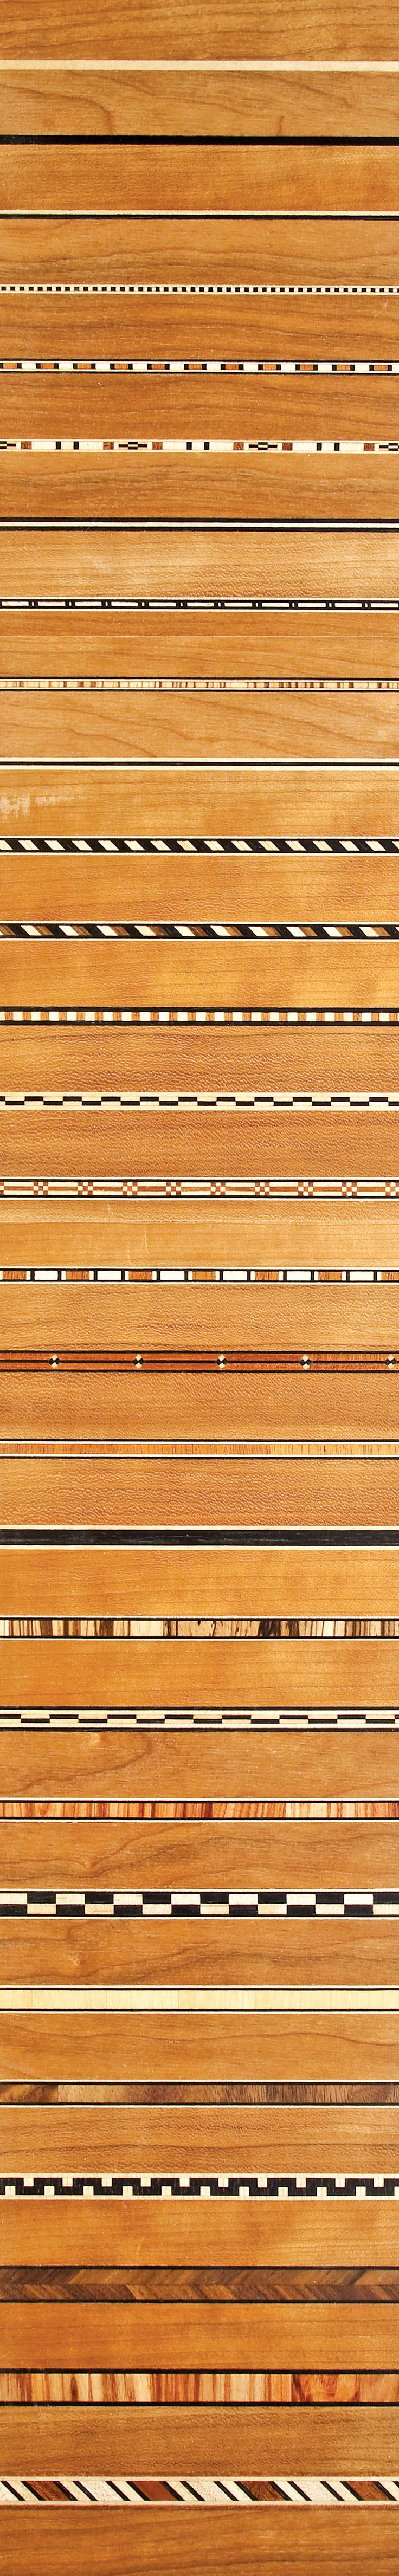 Patterned inlays - easier than you might think to add to a project as you might think if you have a router and some wood glue.